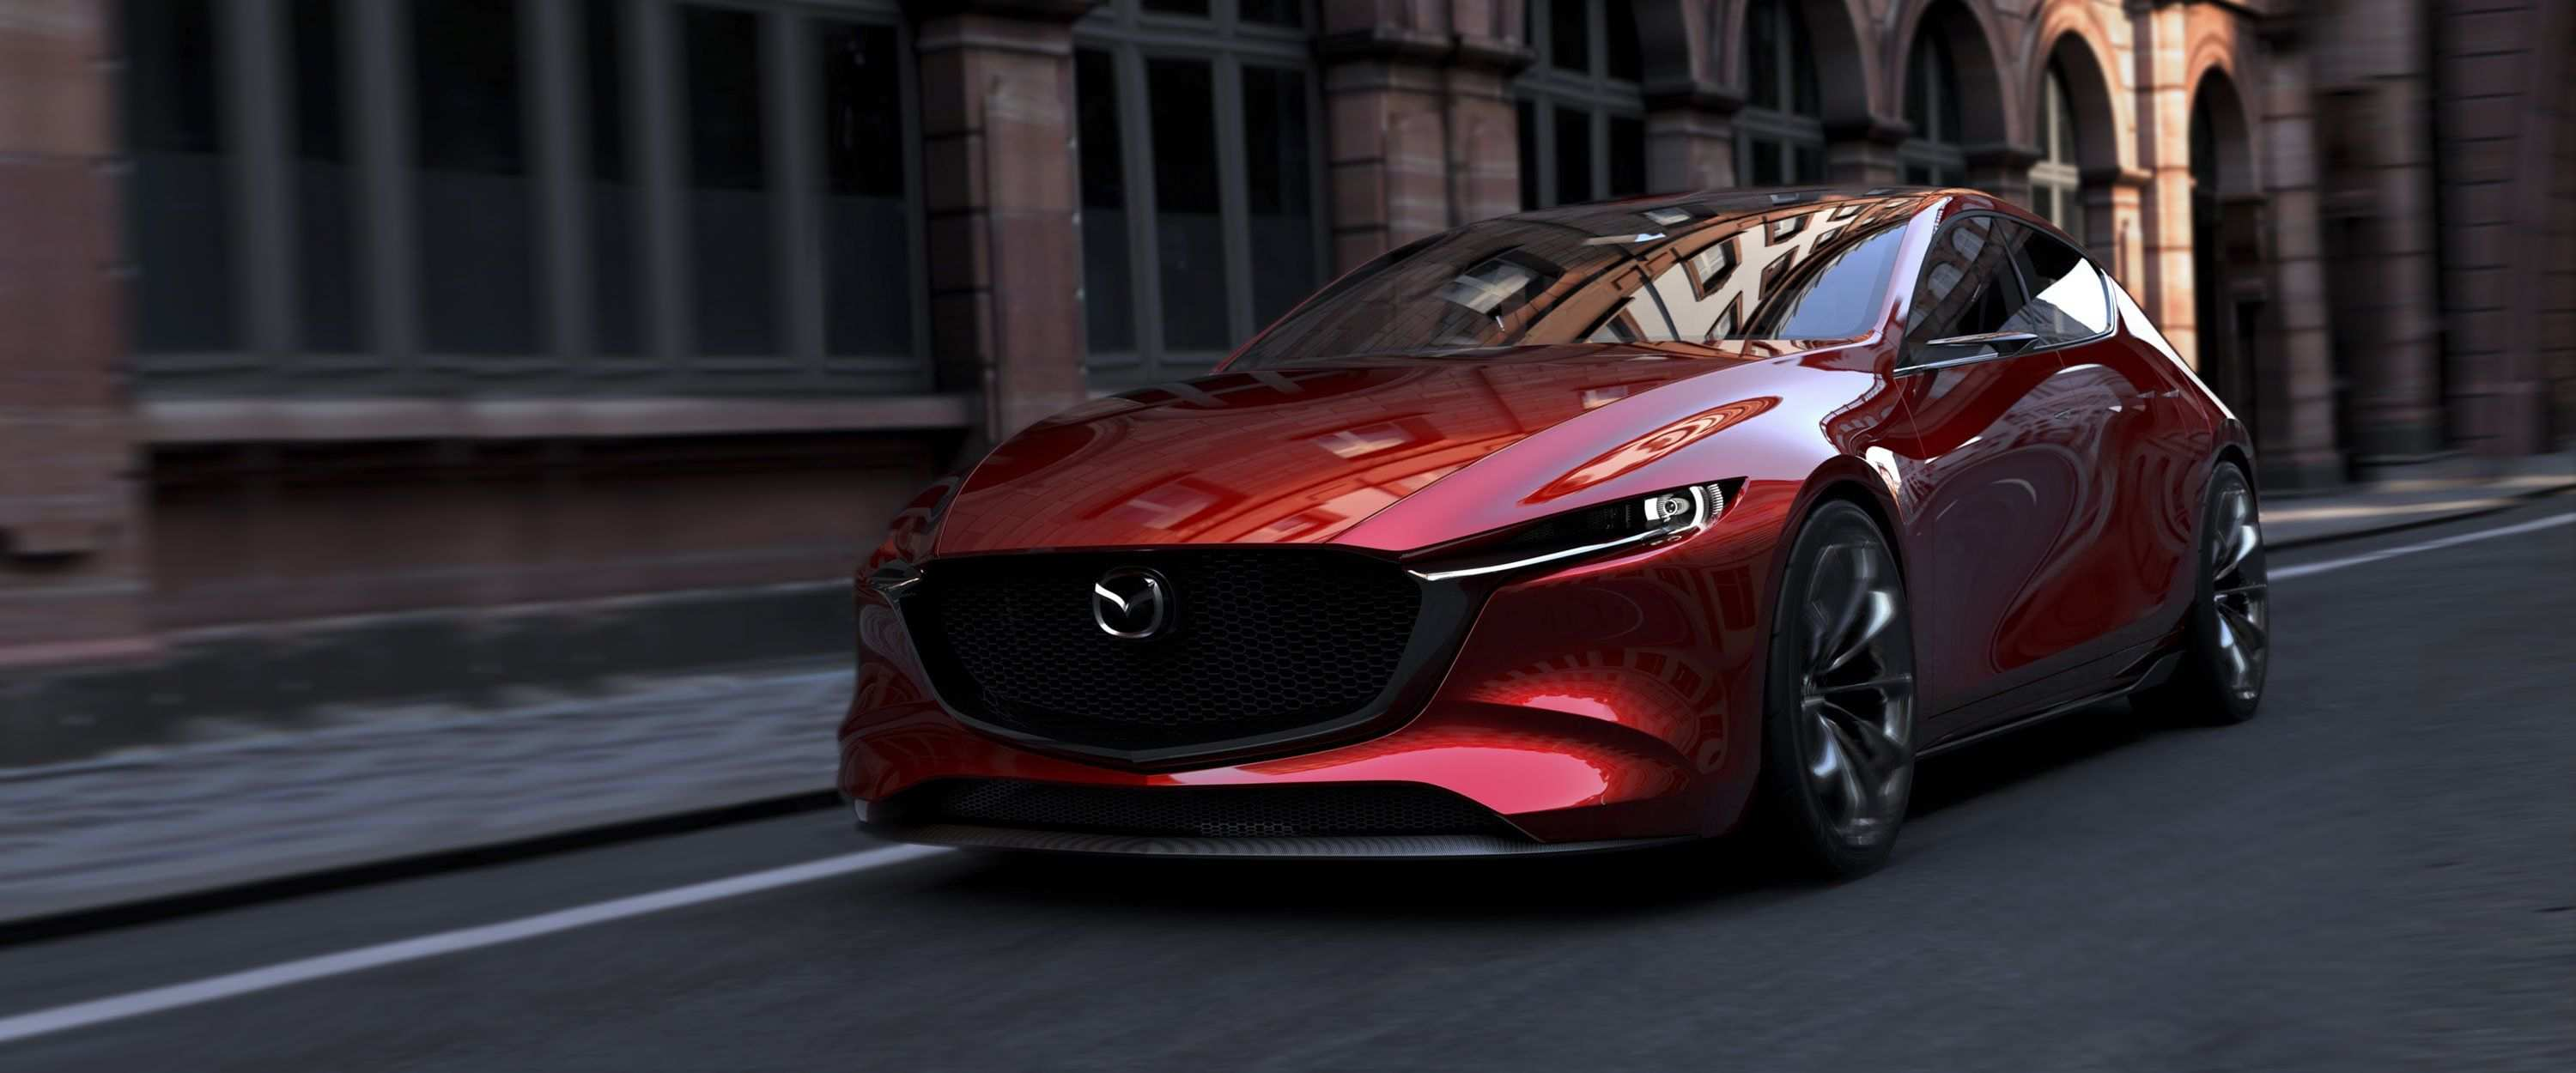 23 New Mazda Electric 2020 Concept